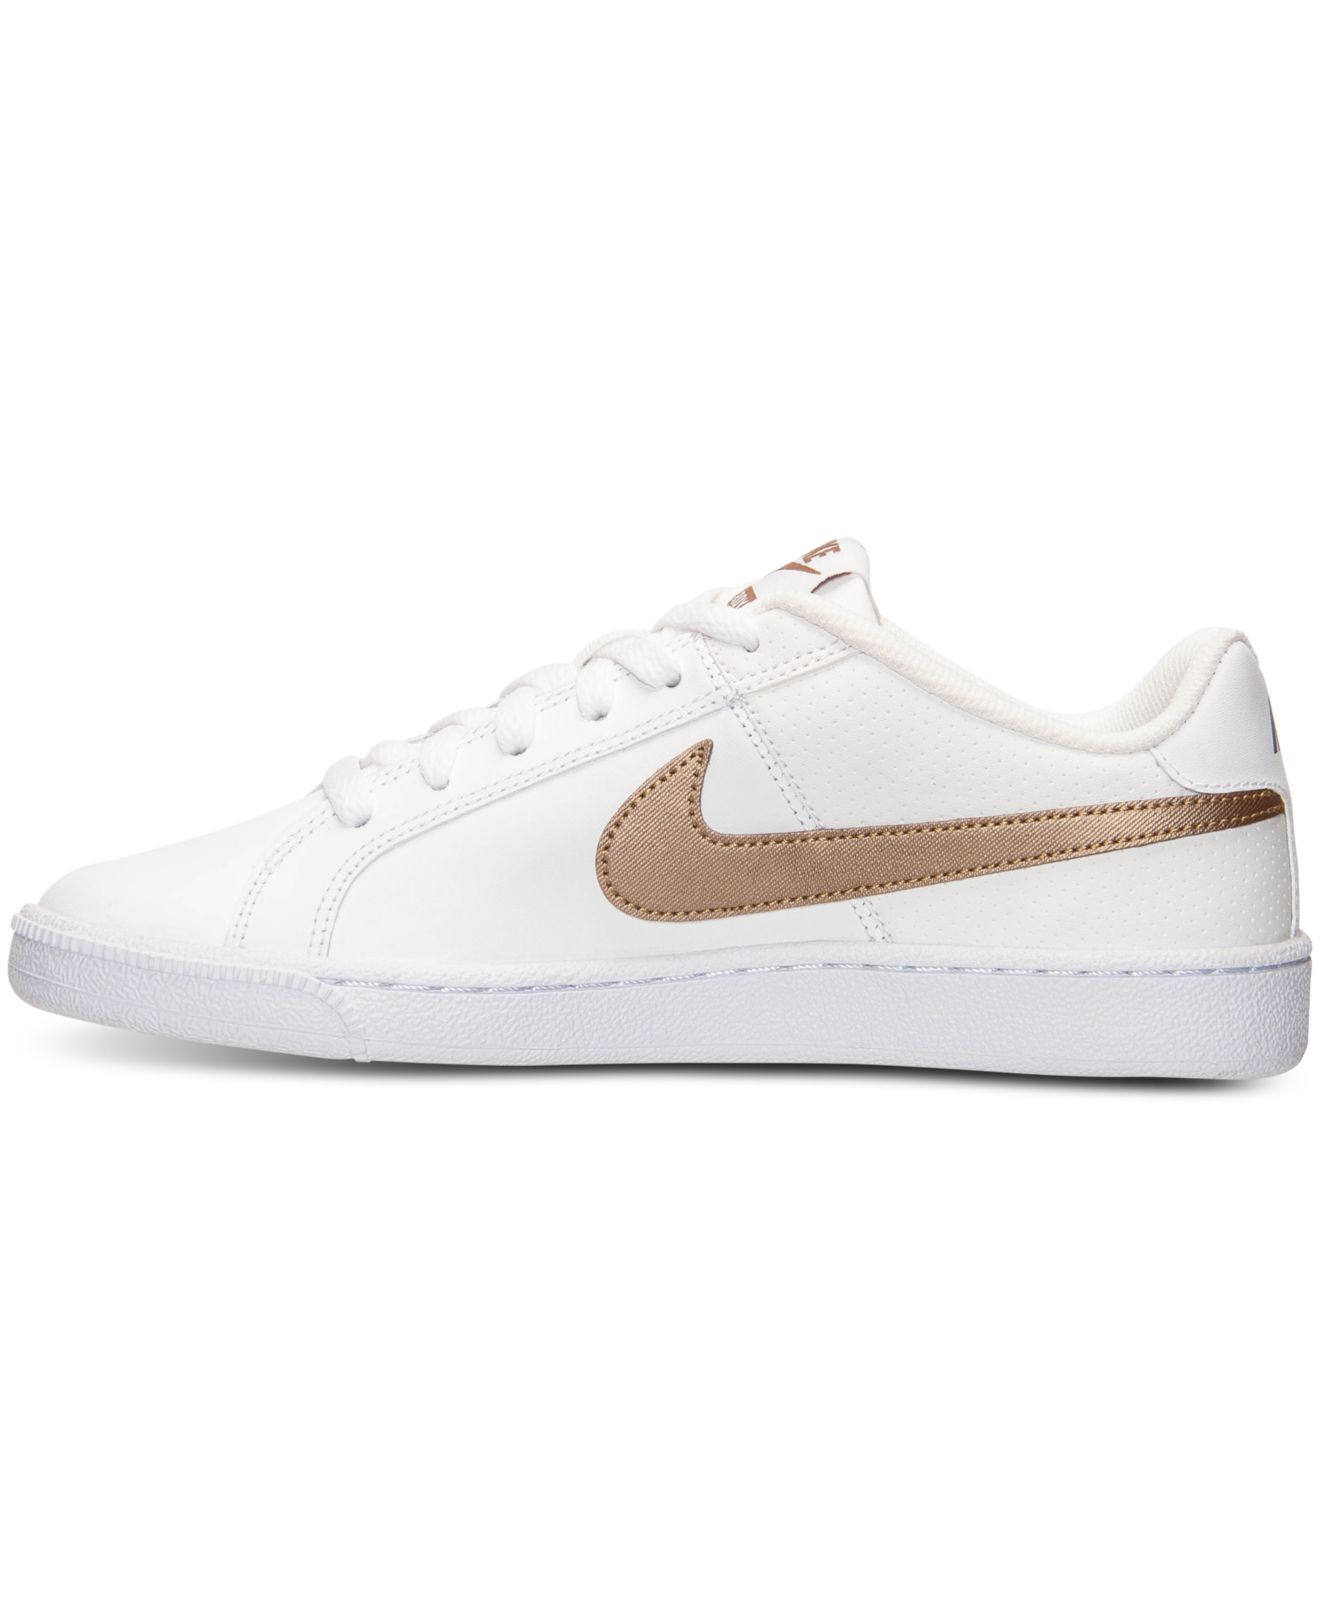 a6450d35ff66 Lyst - Nike Women s Court Royale Casual Sneakers From Finish Line in ...